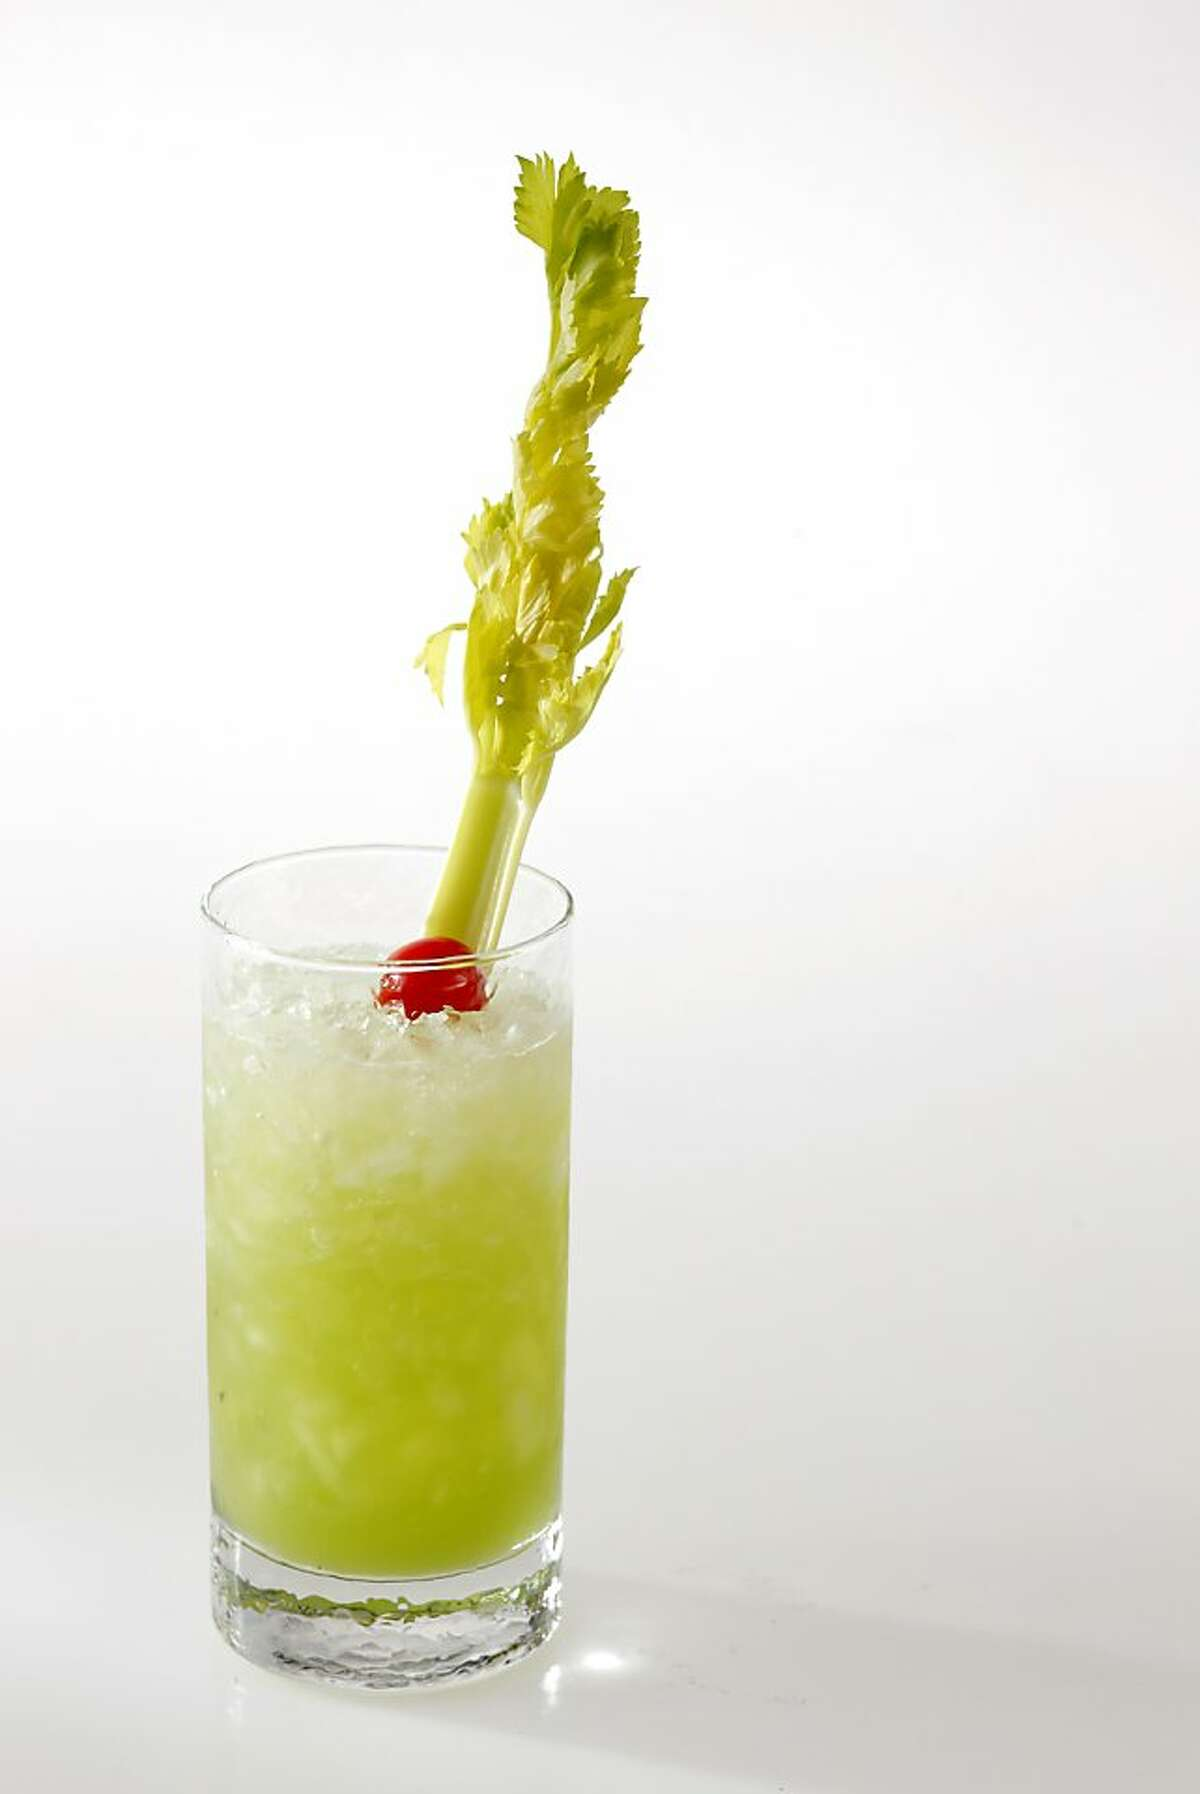 Celery Cooler cocktail as seen in San Francisco, California on Wednesday, May 9, 2012. Drink styled by Sarah Fritsche.